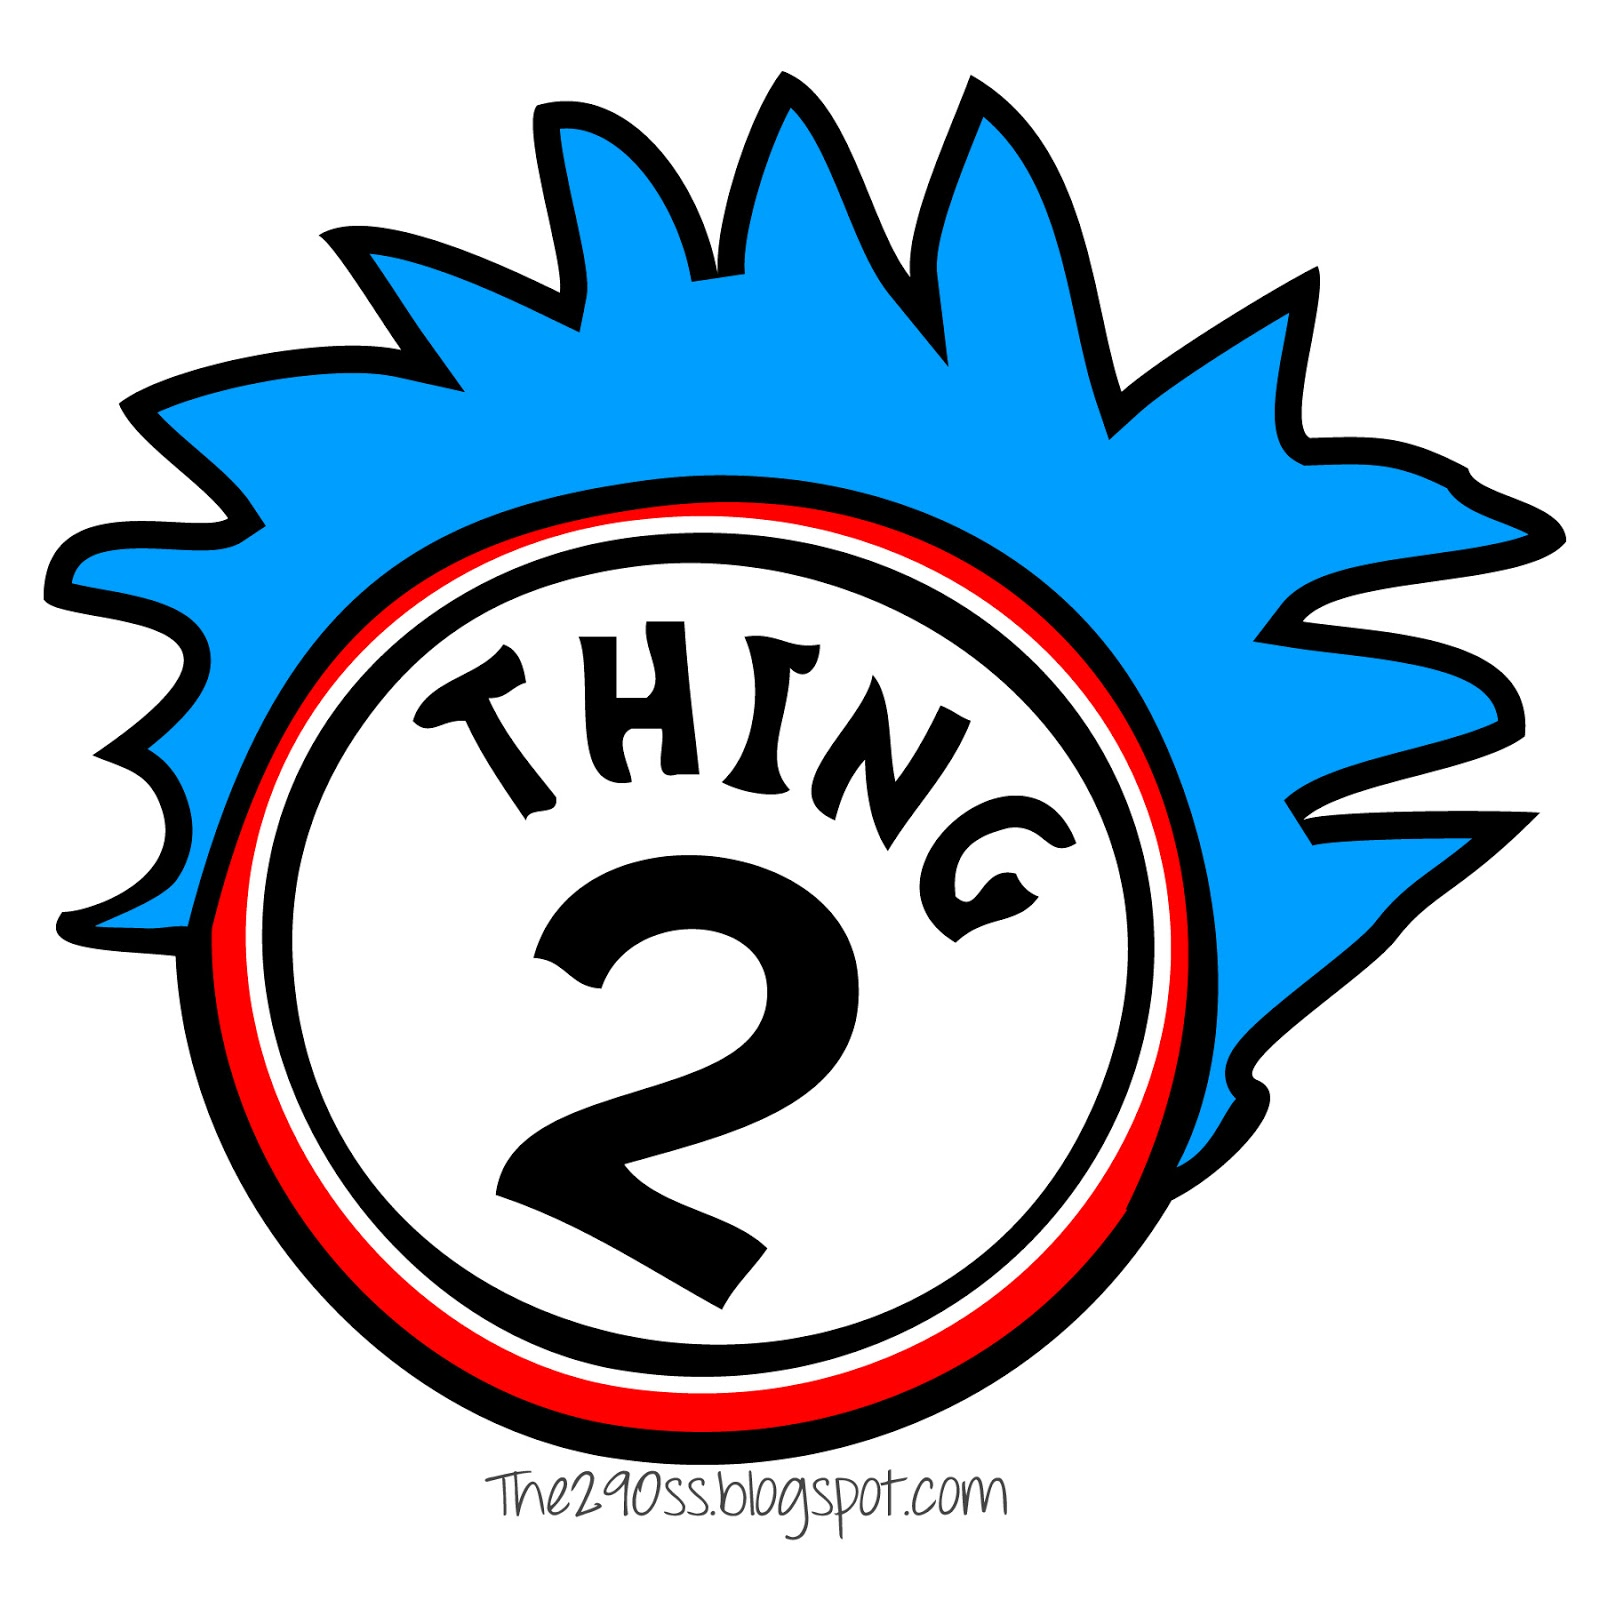 picture about Thing 1 and Thing 2 Printable Cutouts named Detail 1 And Point 2 Printable Photos Absolutely free obtain perfect